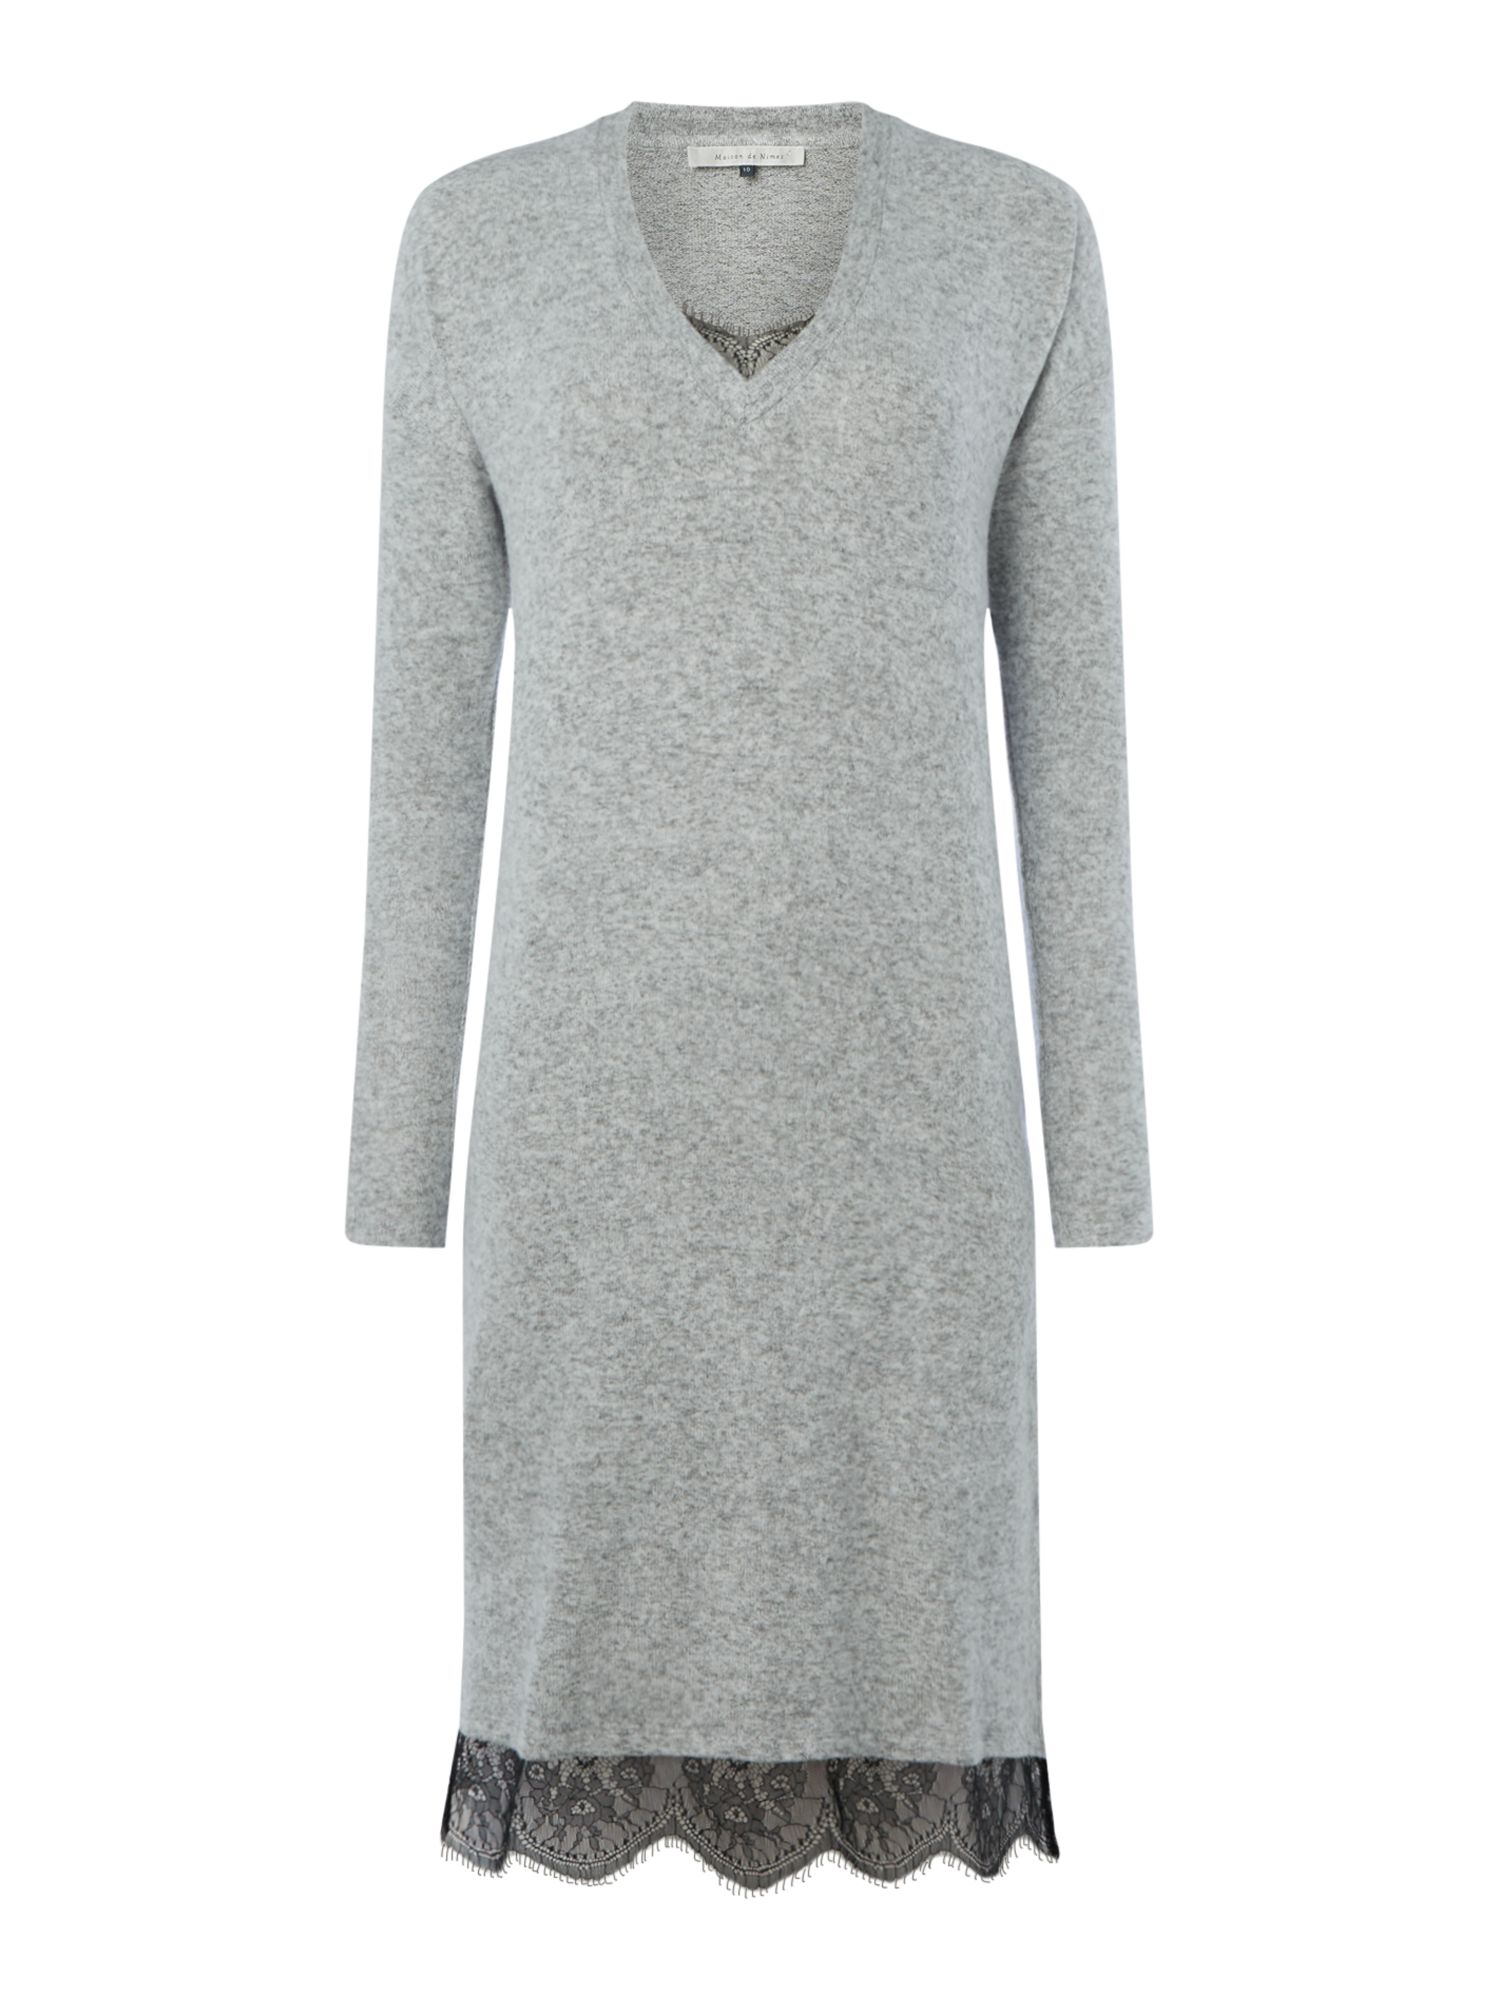 Maison De Nimes V Neck Lace Tunic, Grey Marl